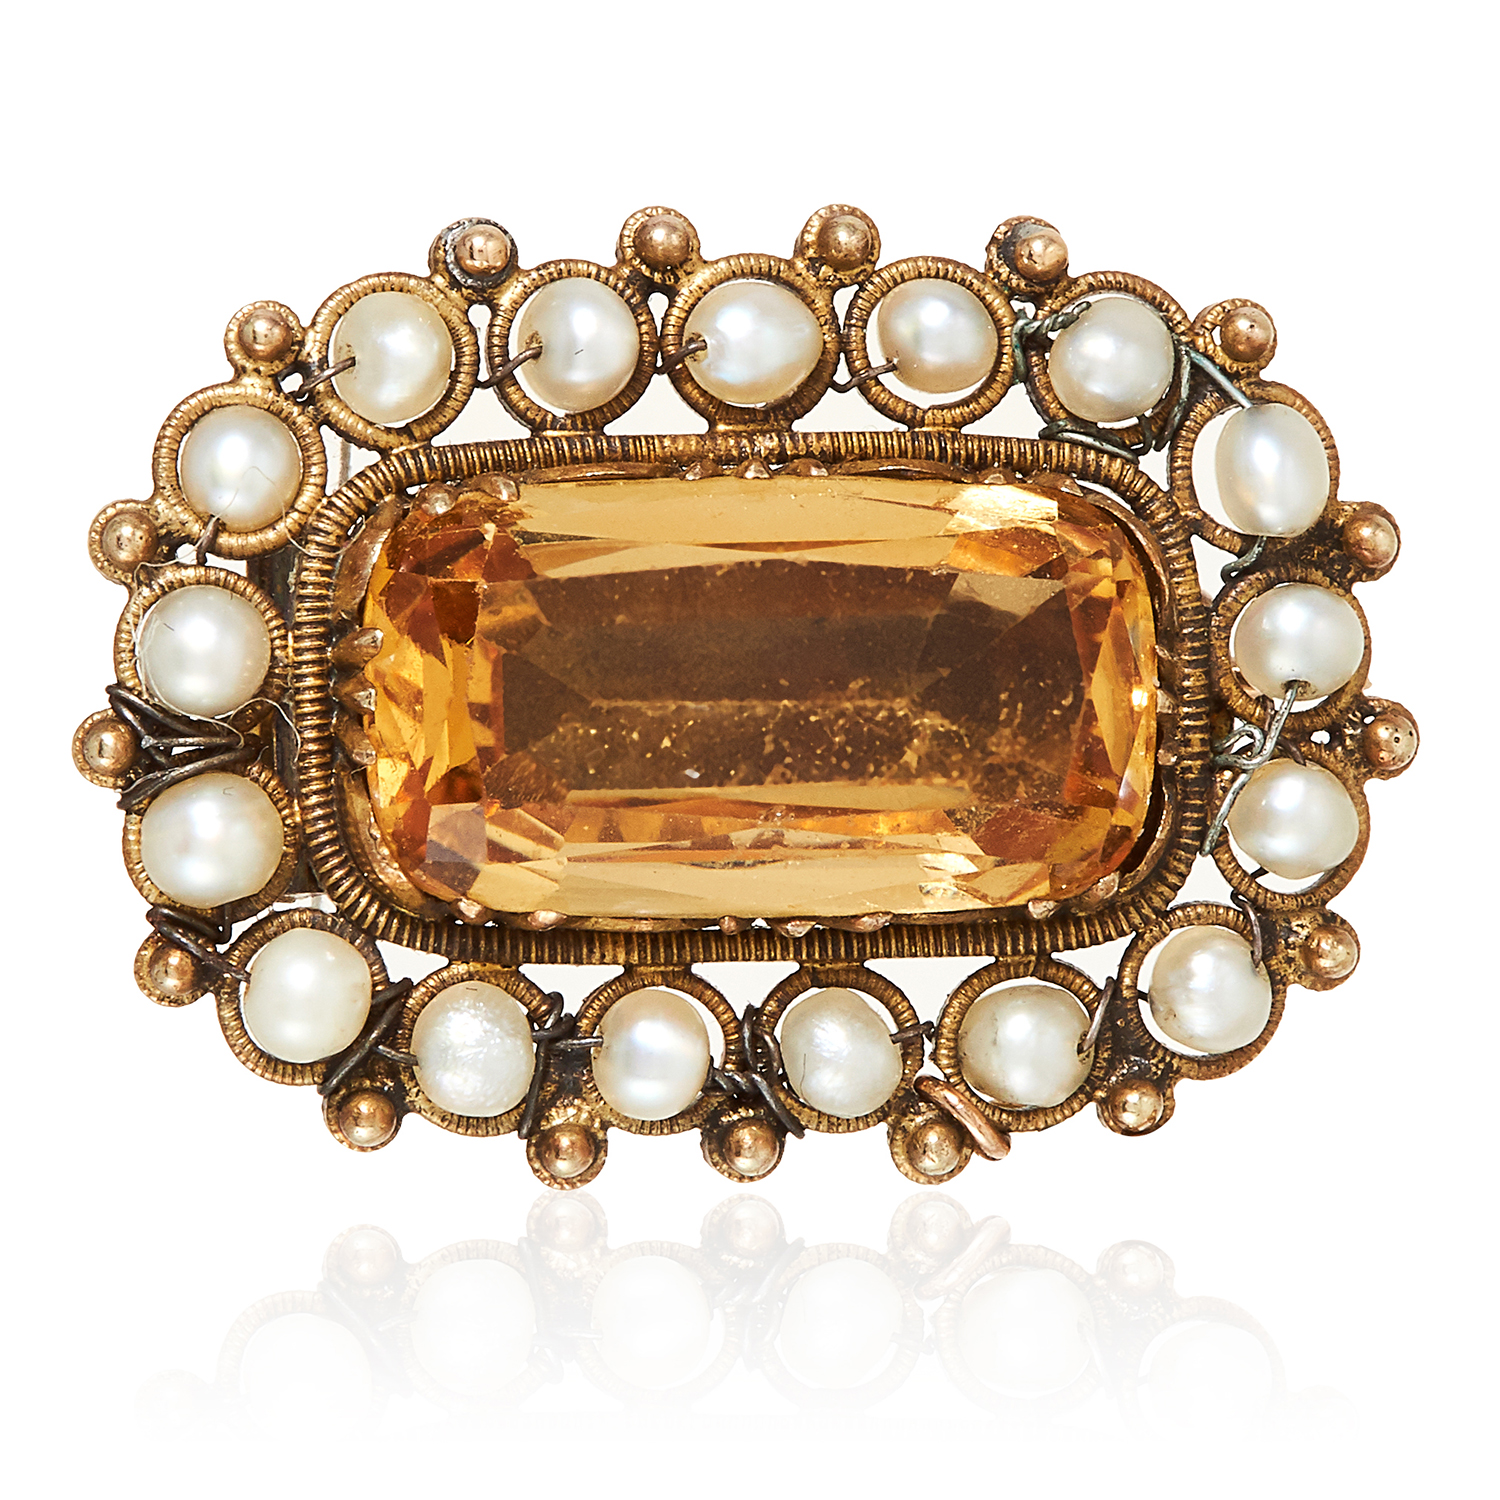 Los 48 - AN ANTIQUE IMPERIAL TOPAZ AND CITRINE BROOCH, 19TH CENTURY in high carat yellow gold, the central